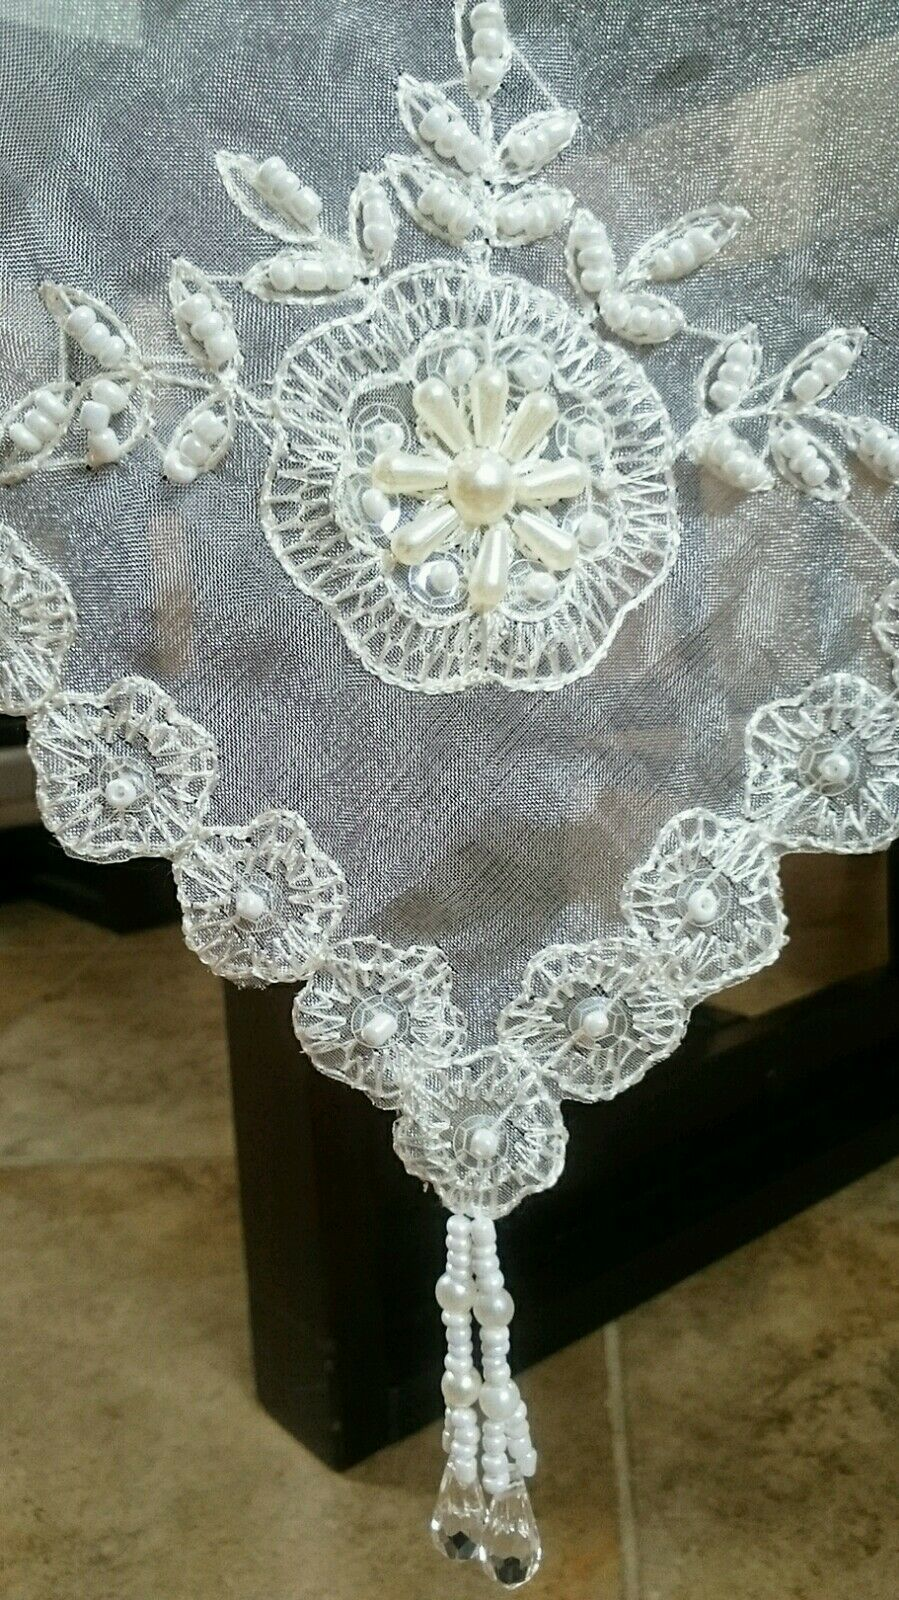 Elegant Elegant Elegant Linen 54x72  Handmade Beaded Pearl Sheer Embroidery Tablecloth Napkins a99aed